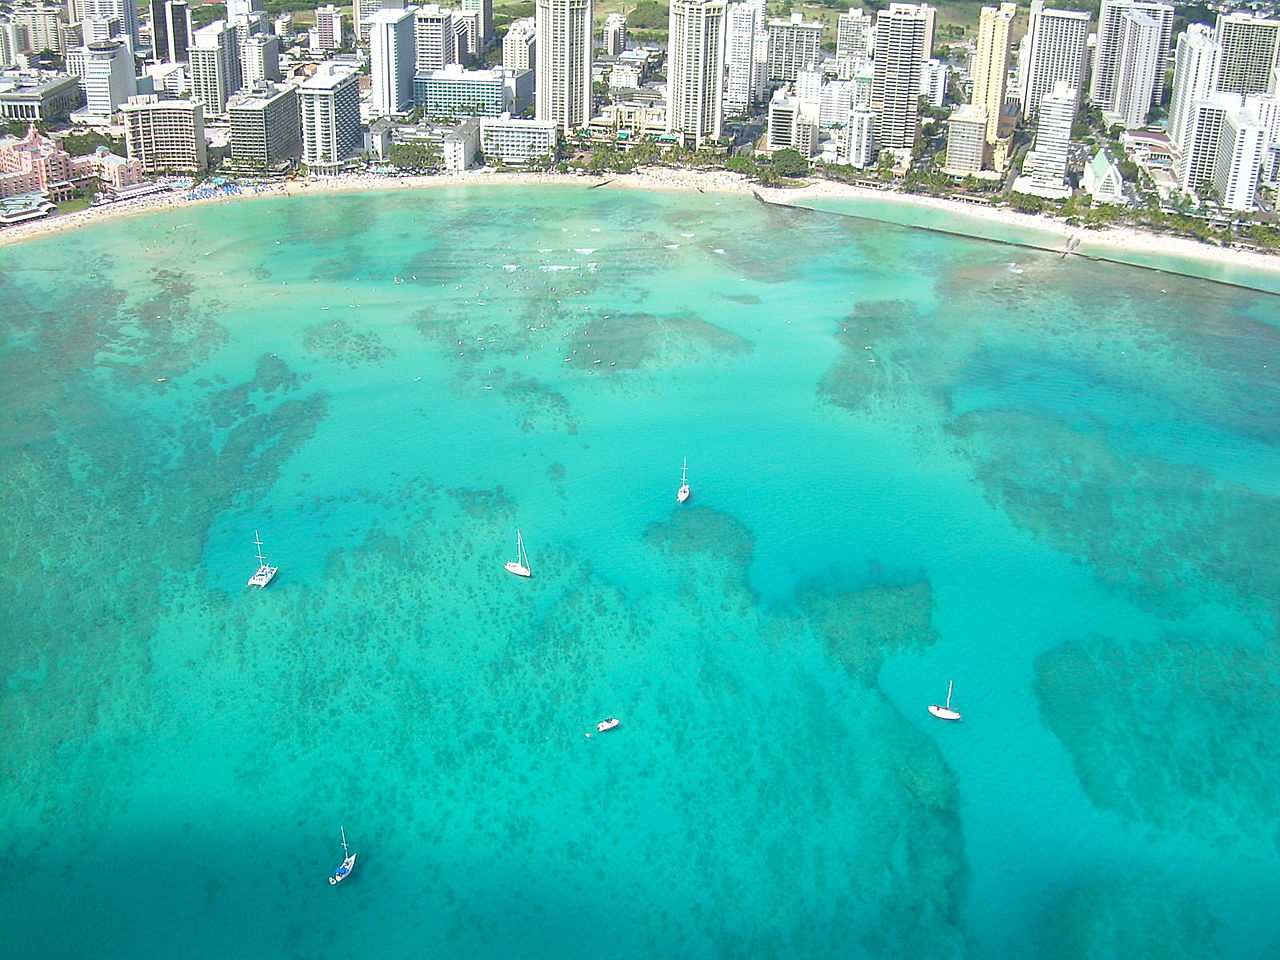 immagine del Quartiere Waikiki a Honolulu nelle Hawaii - USA